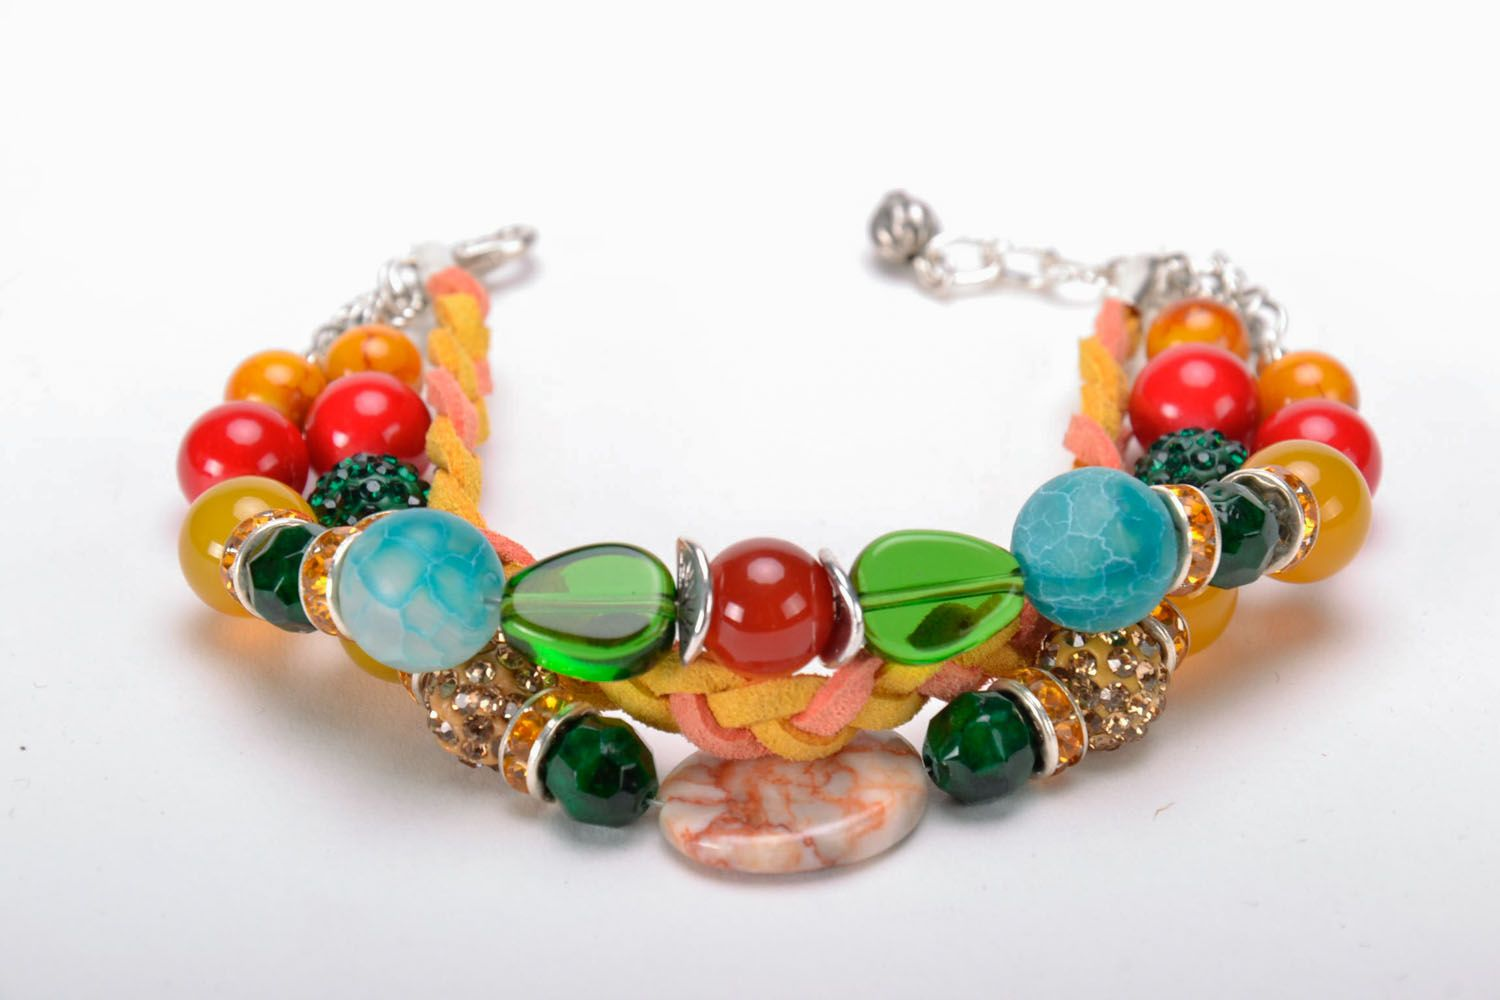 Bracelet made of natural stones photo 4